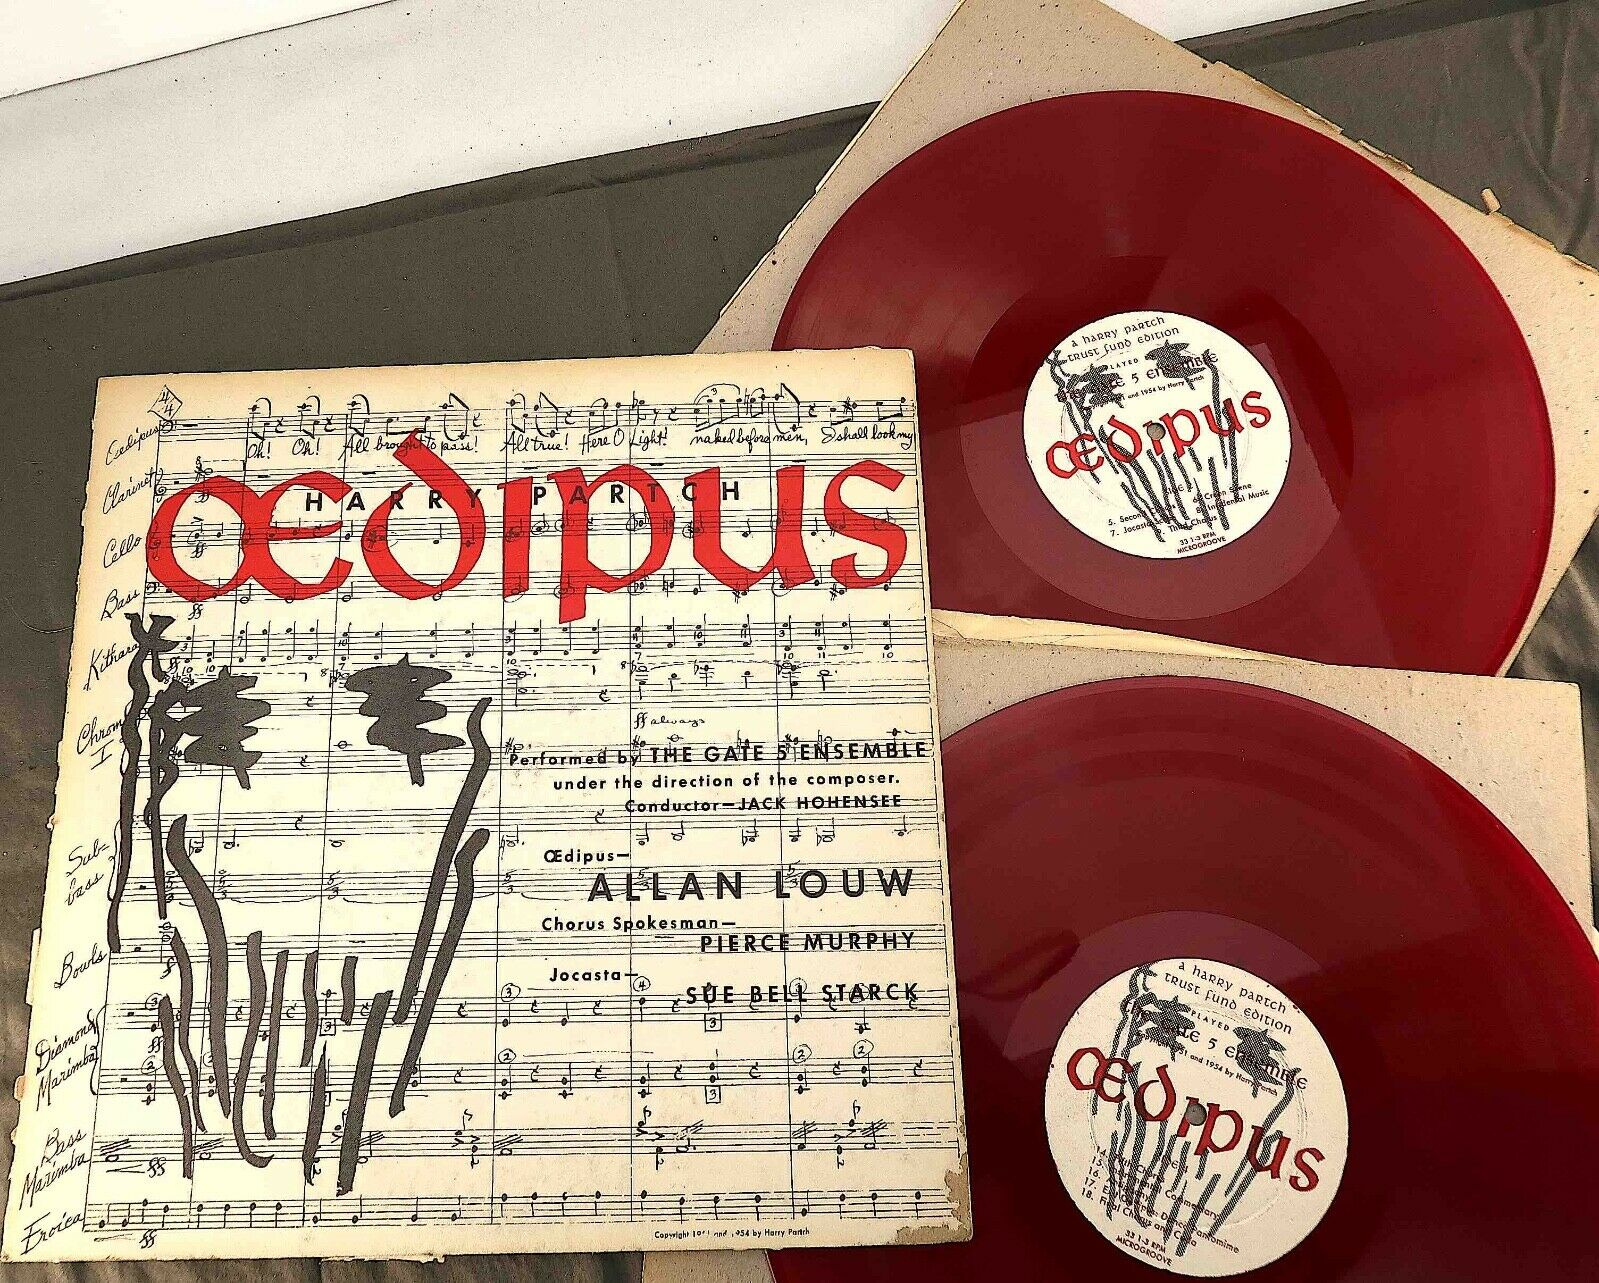 1954-Signed/Numbered First Edition Harry Partch OEDIPUS  33 rpm Red Vinyl Album